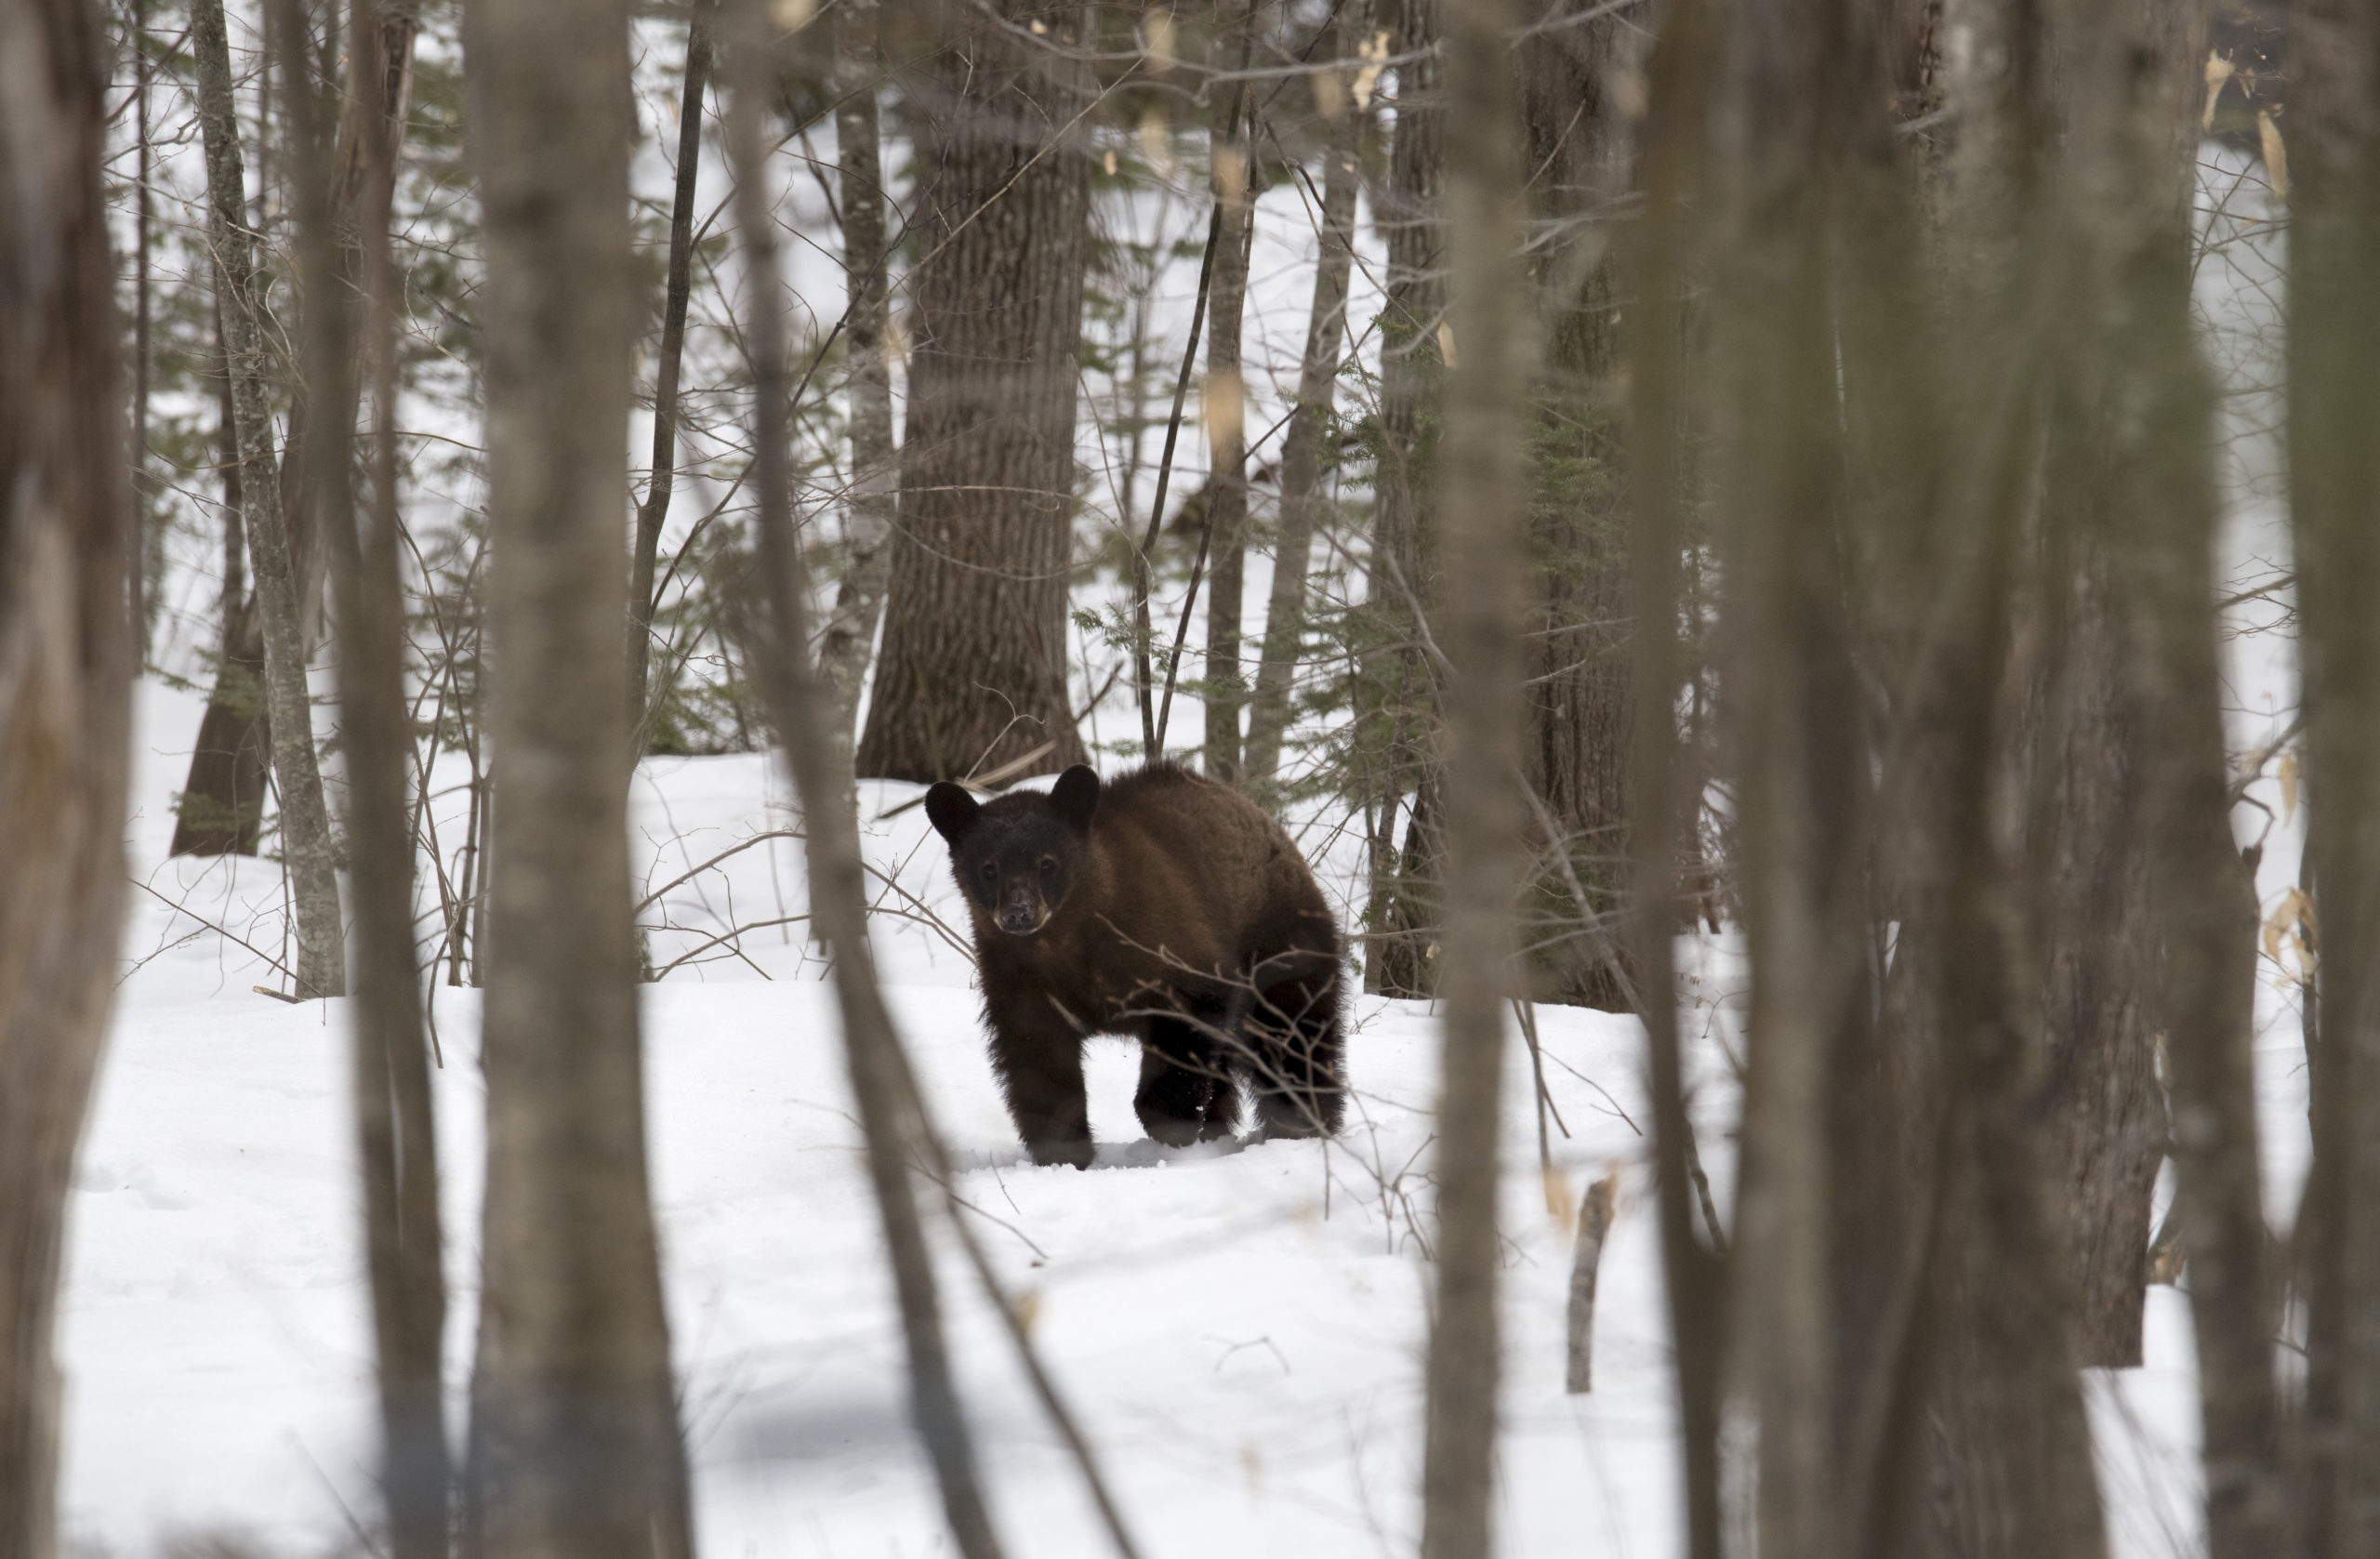 A black bear roams the property of Independent Wildlife Biologist Ben Kilham March 29, 2018 in Lyme, New Hampshire. (DON EMMERT/AFP via Getty Images)